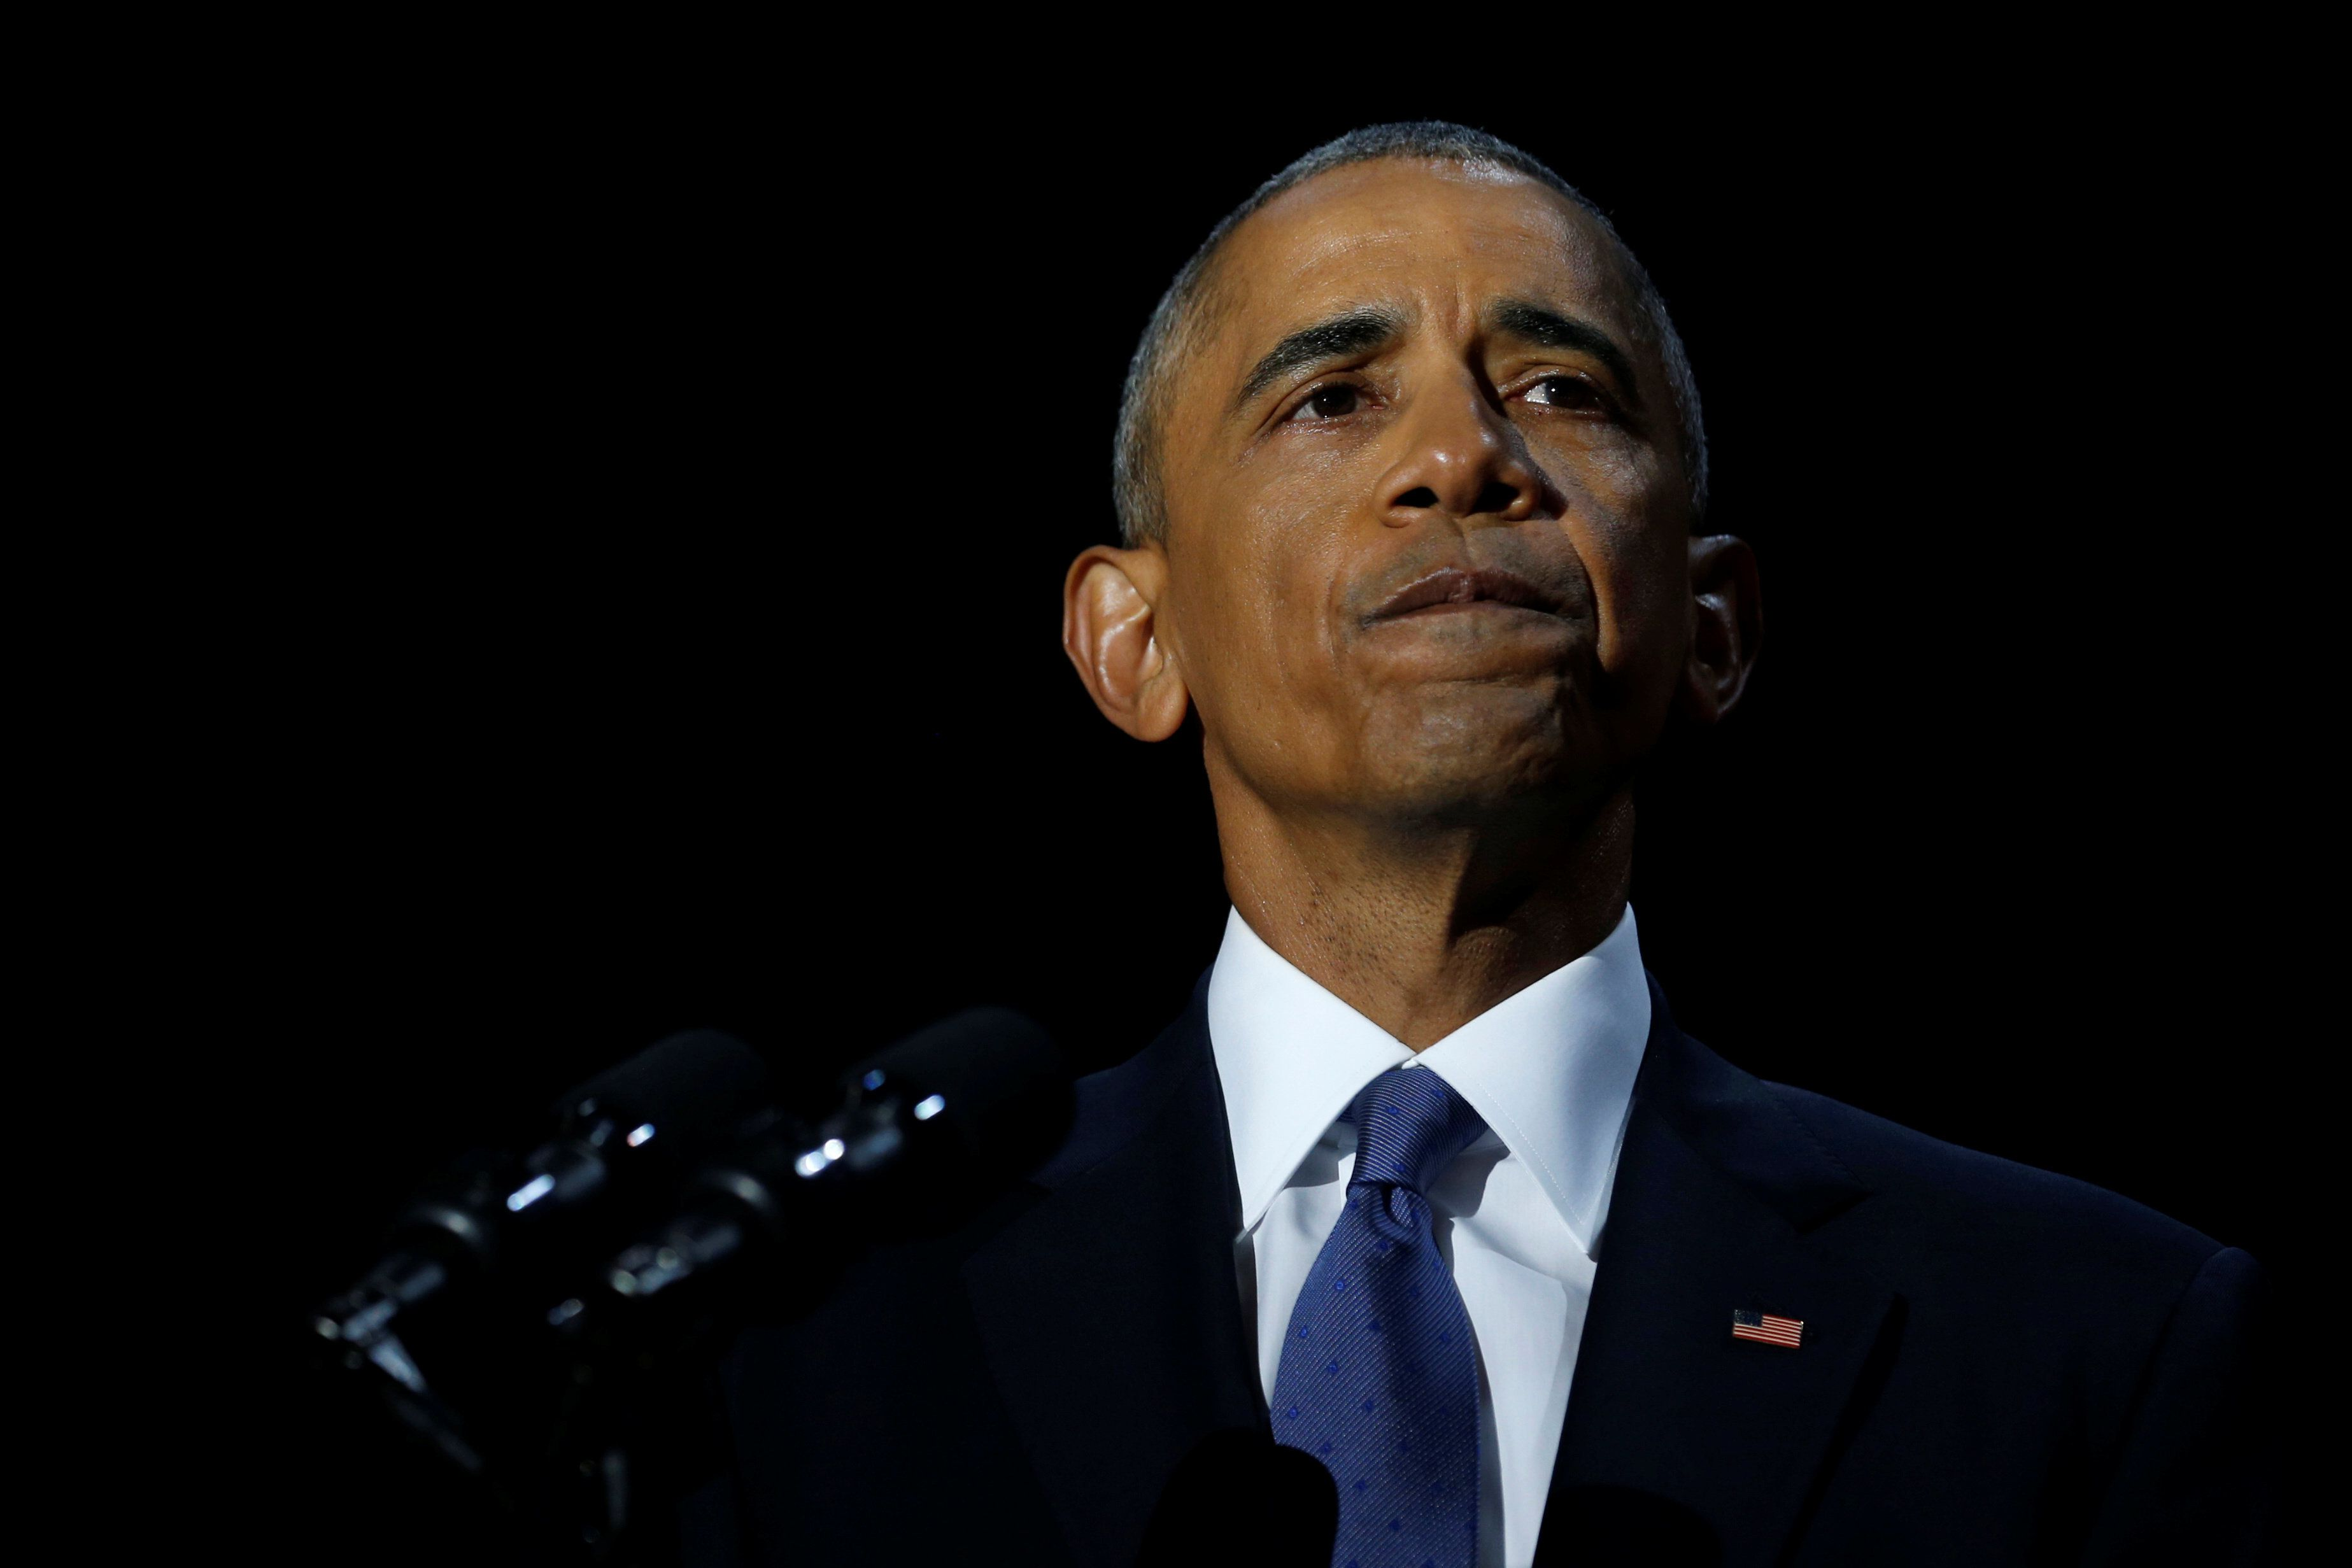 President Barack Obama Saw Himself -- His Persona And Story -- As The